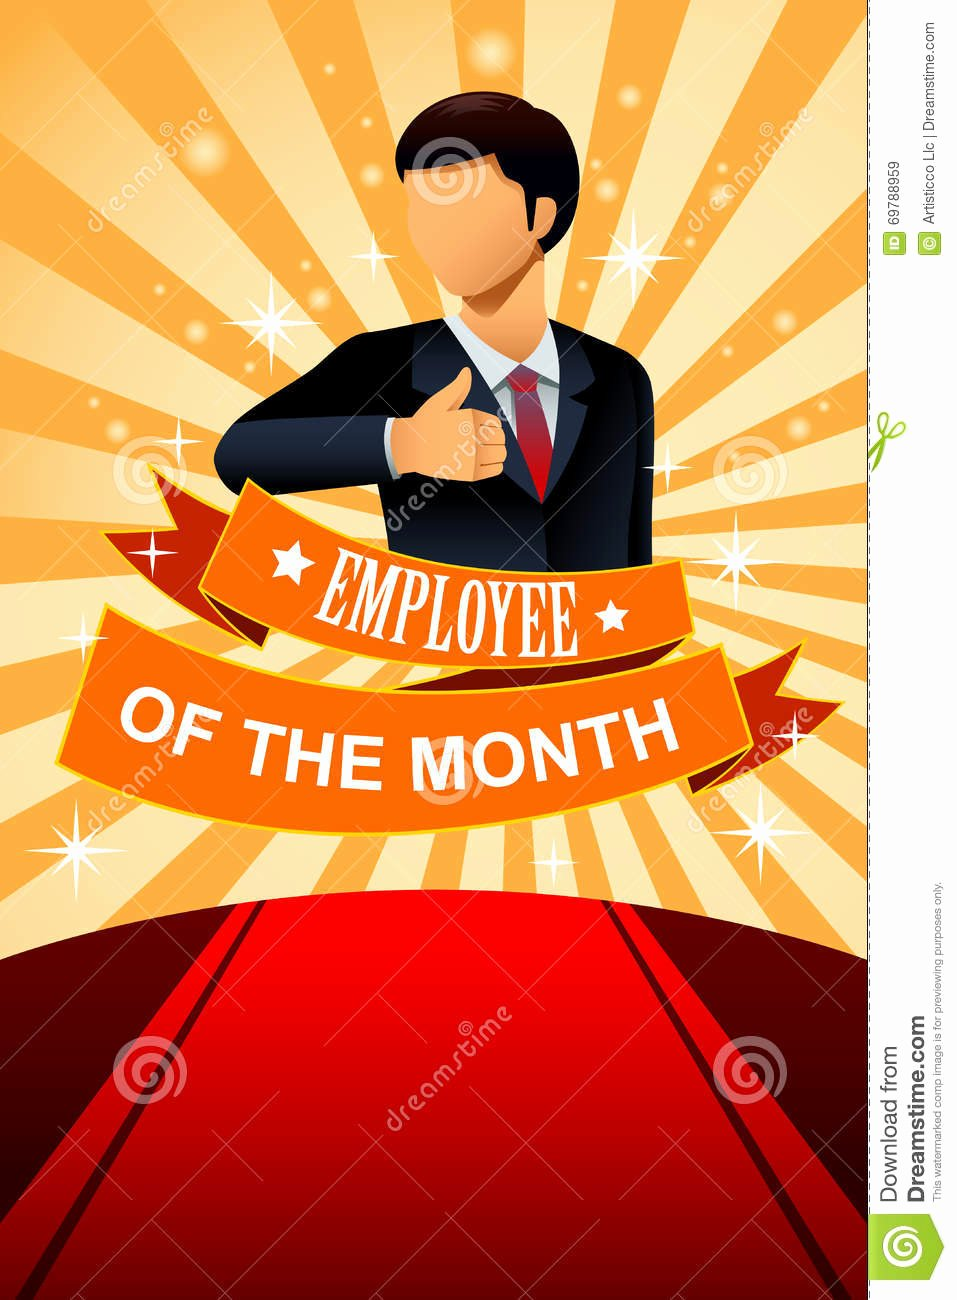 Employee Of the Month Photo Frame Template Awesome Employee the Month Poster Frame Stock Vector